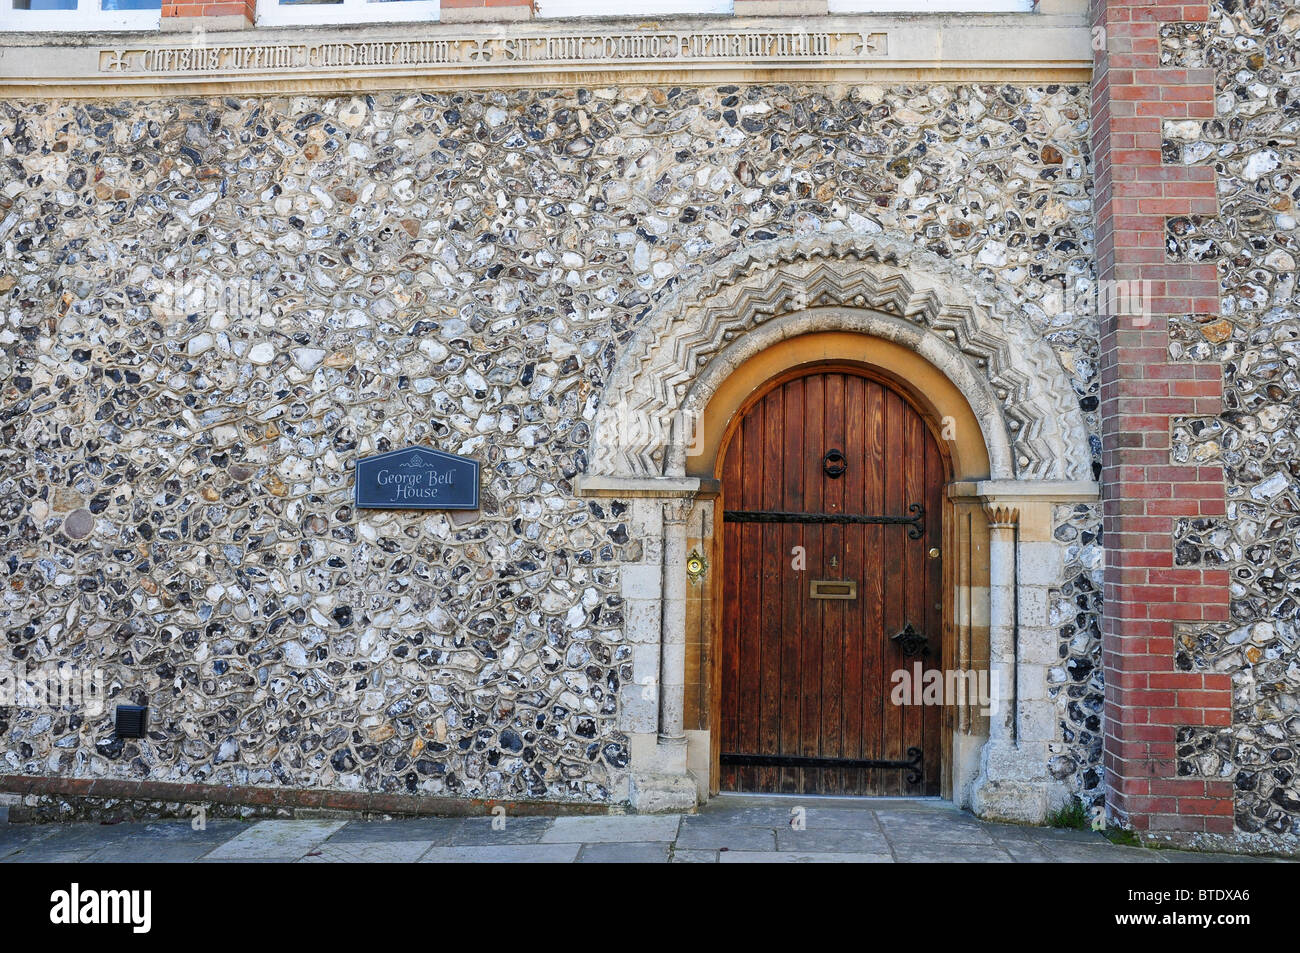 Norman doorway to George Bell House. Canon Lane Chichester. - Stock Image